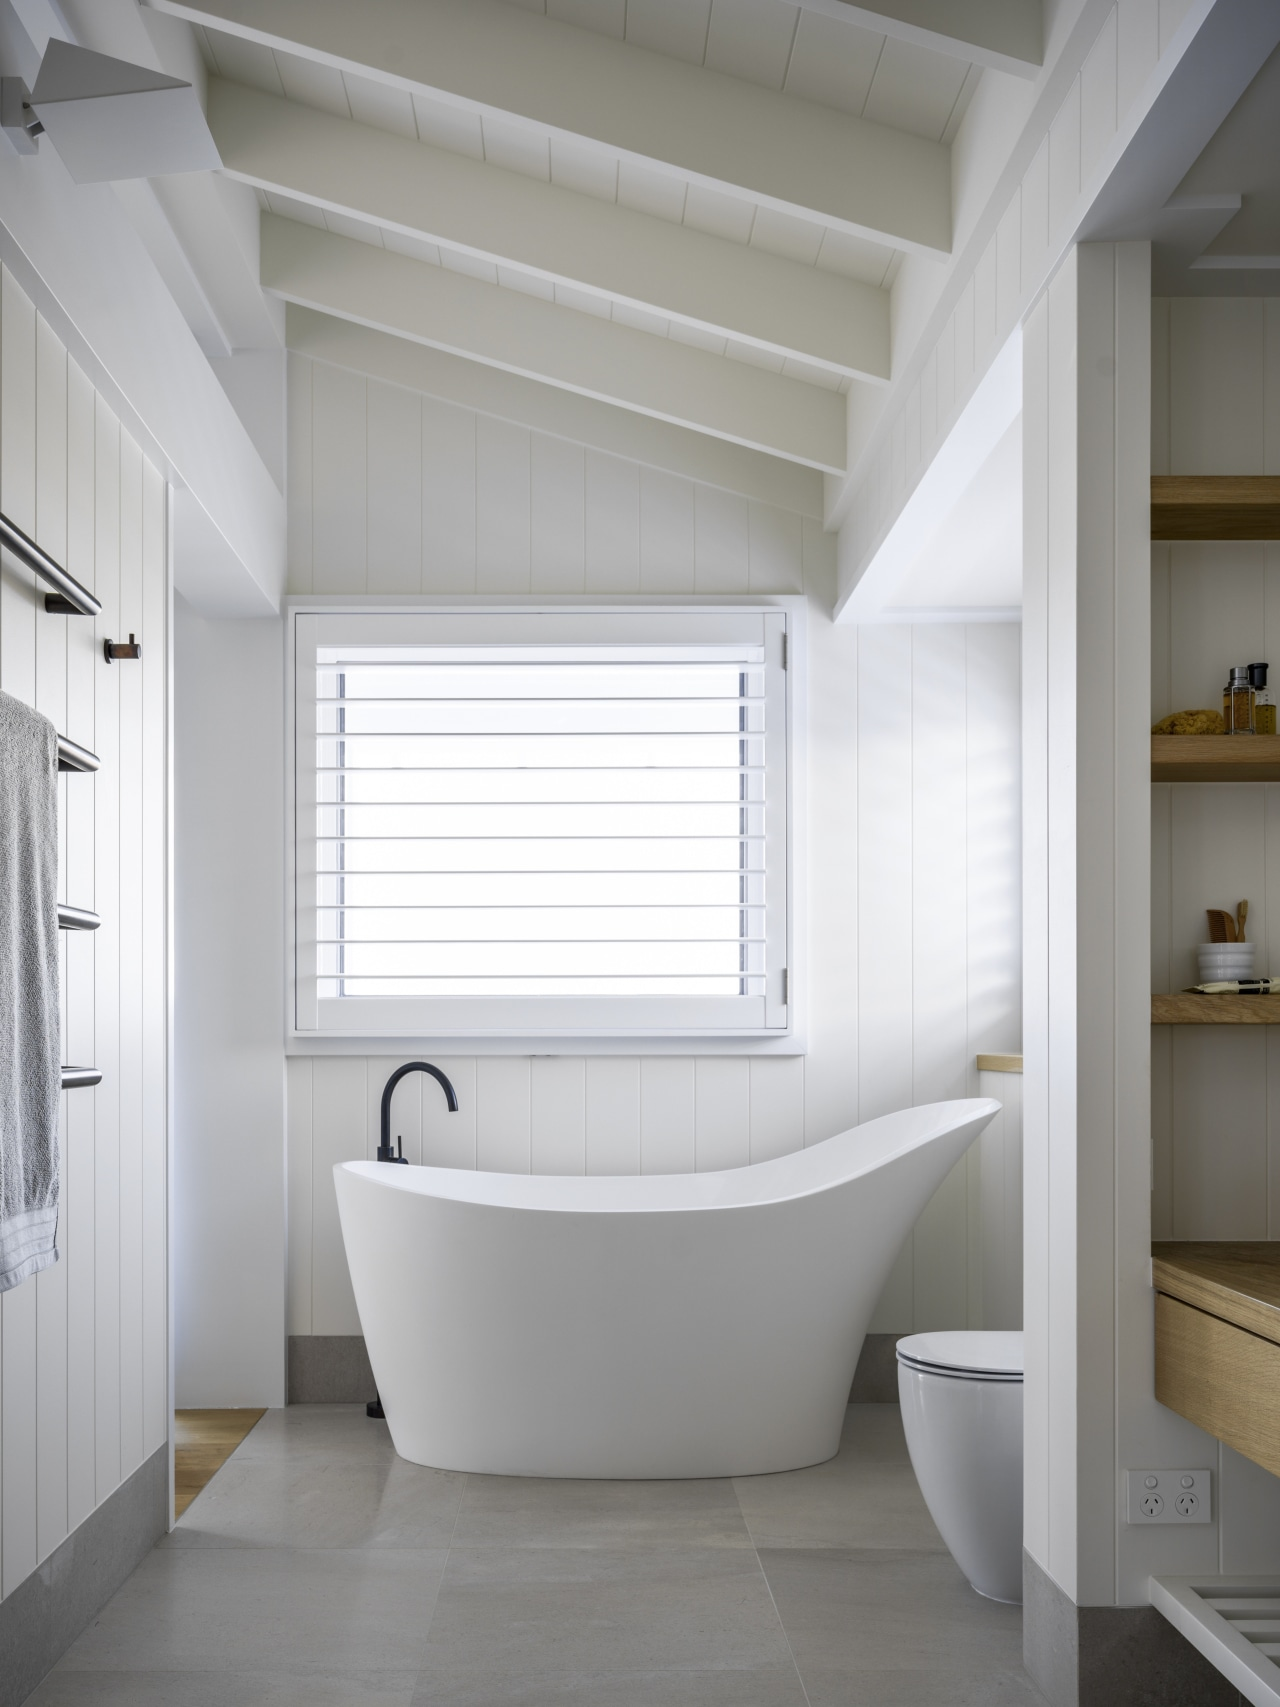 ​​​​​​​The aptly named slipper bath provides a focal architecture, bathroom, bathtub, slipper bath, ensuite, white weatherboard finish, hamptons style